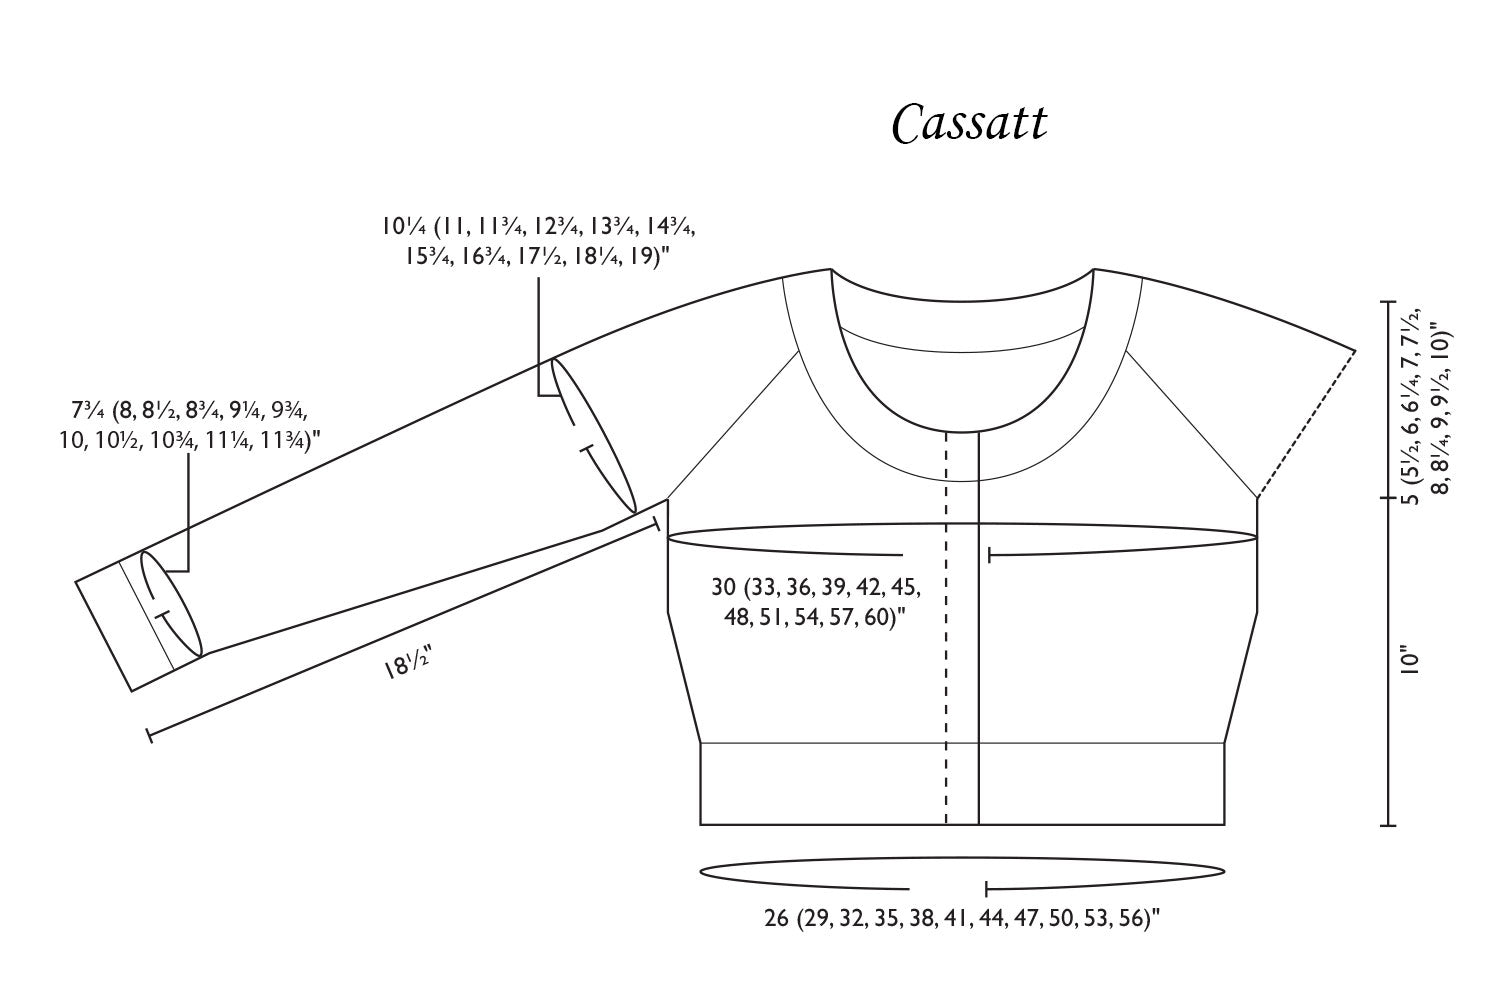 Detailed schematic line drawing with dimensions for Cassatt